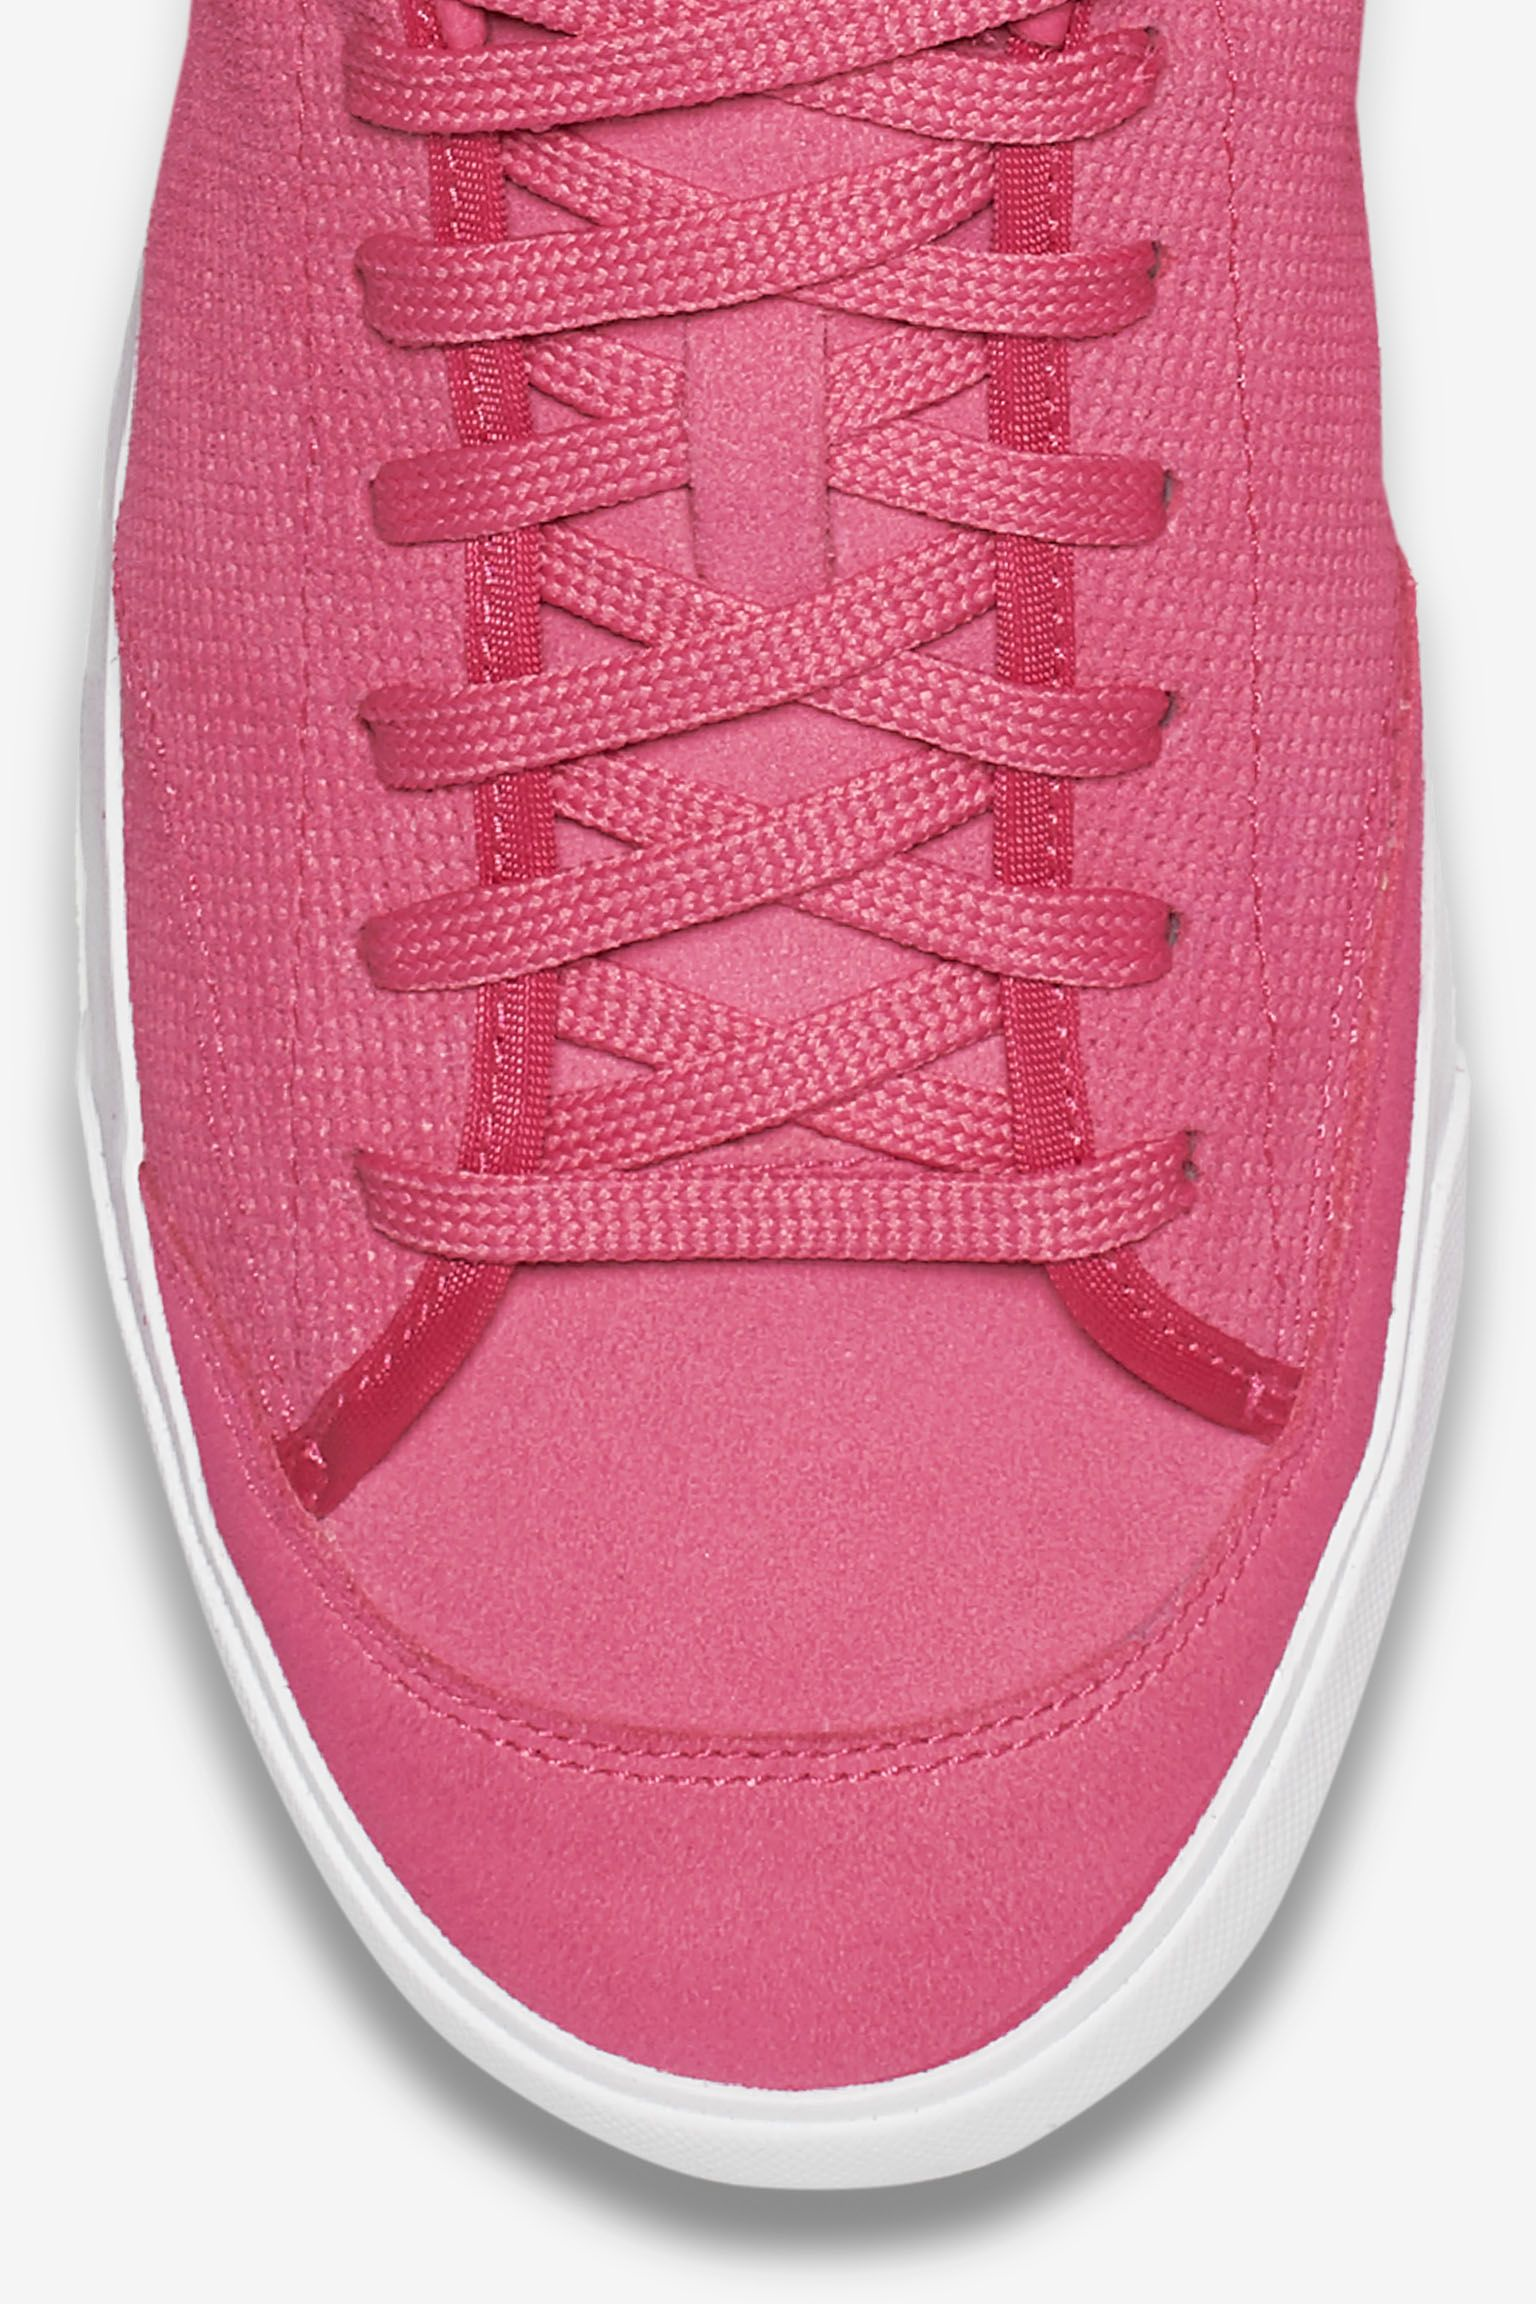 NikeCourt All Court 2 Low 'Vivid Pink'